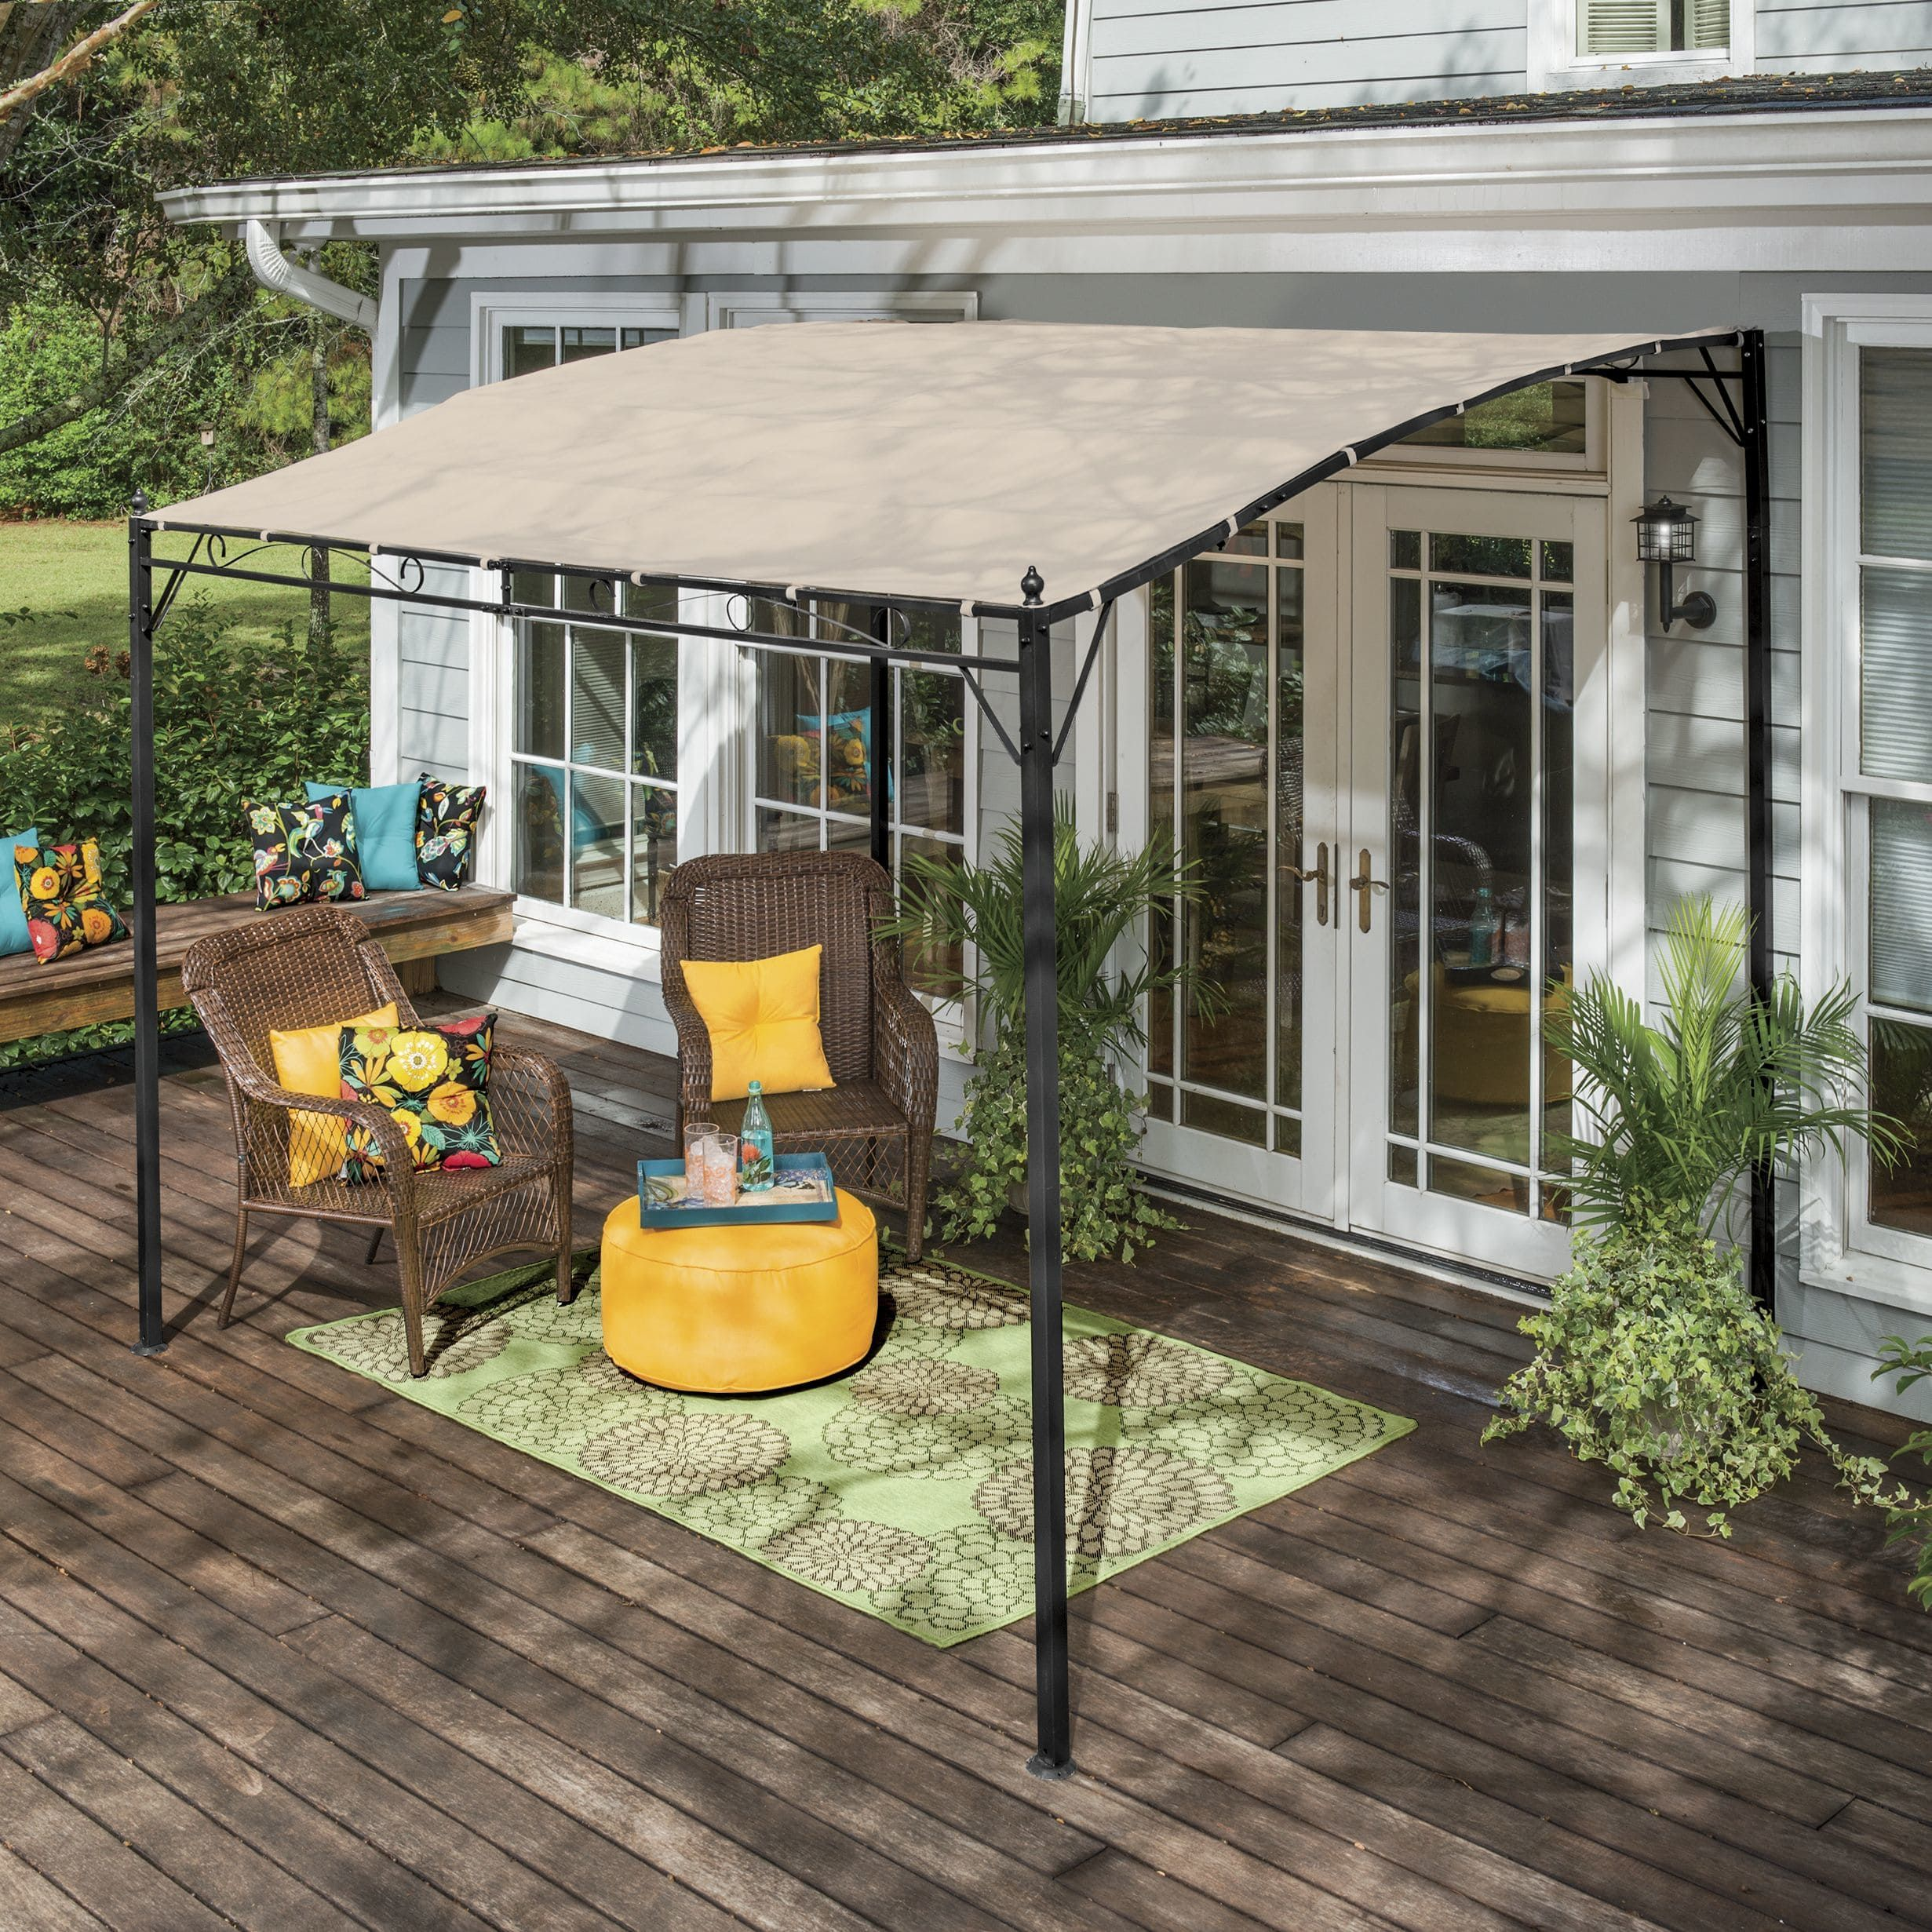 patio patios retractable clickawning awnings awning size commercial mobile full of canopy sears window aluminum porch lowes home front kits door nuimage